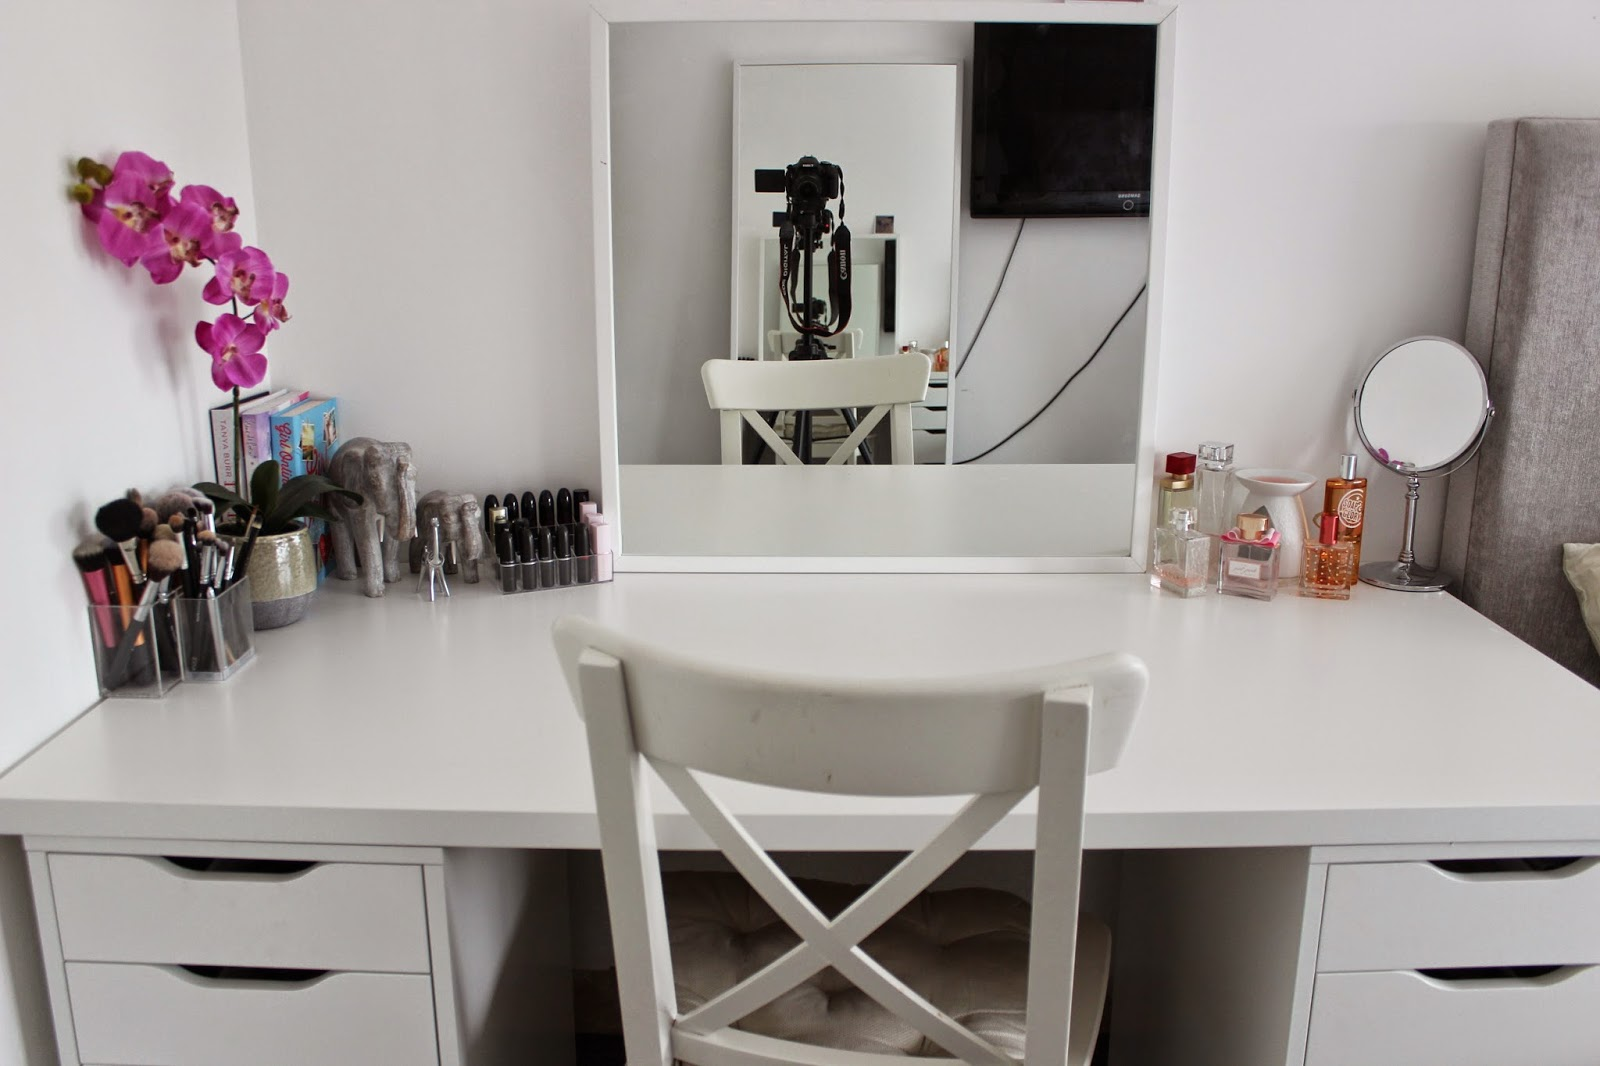 E.H: My Makeup Desk, Storage And Organisation